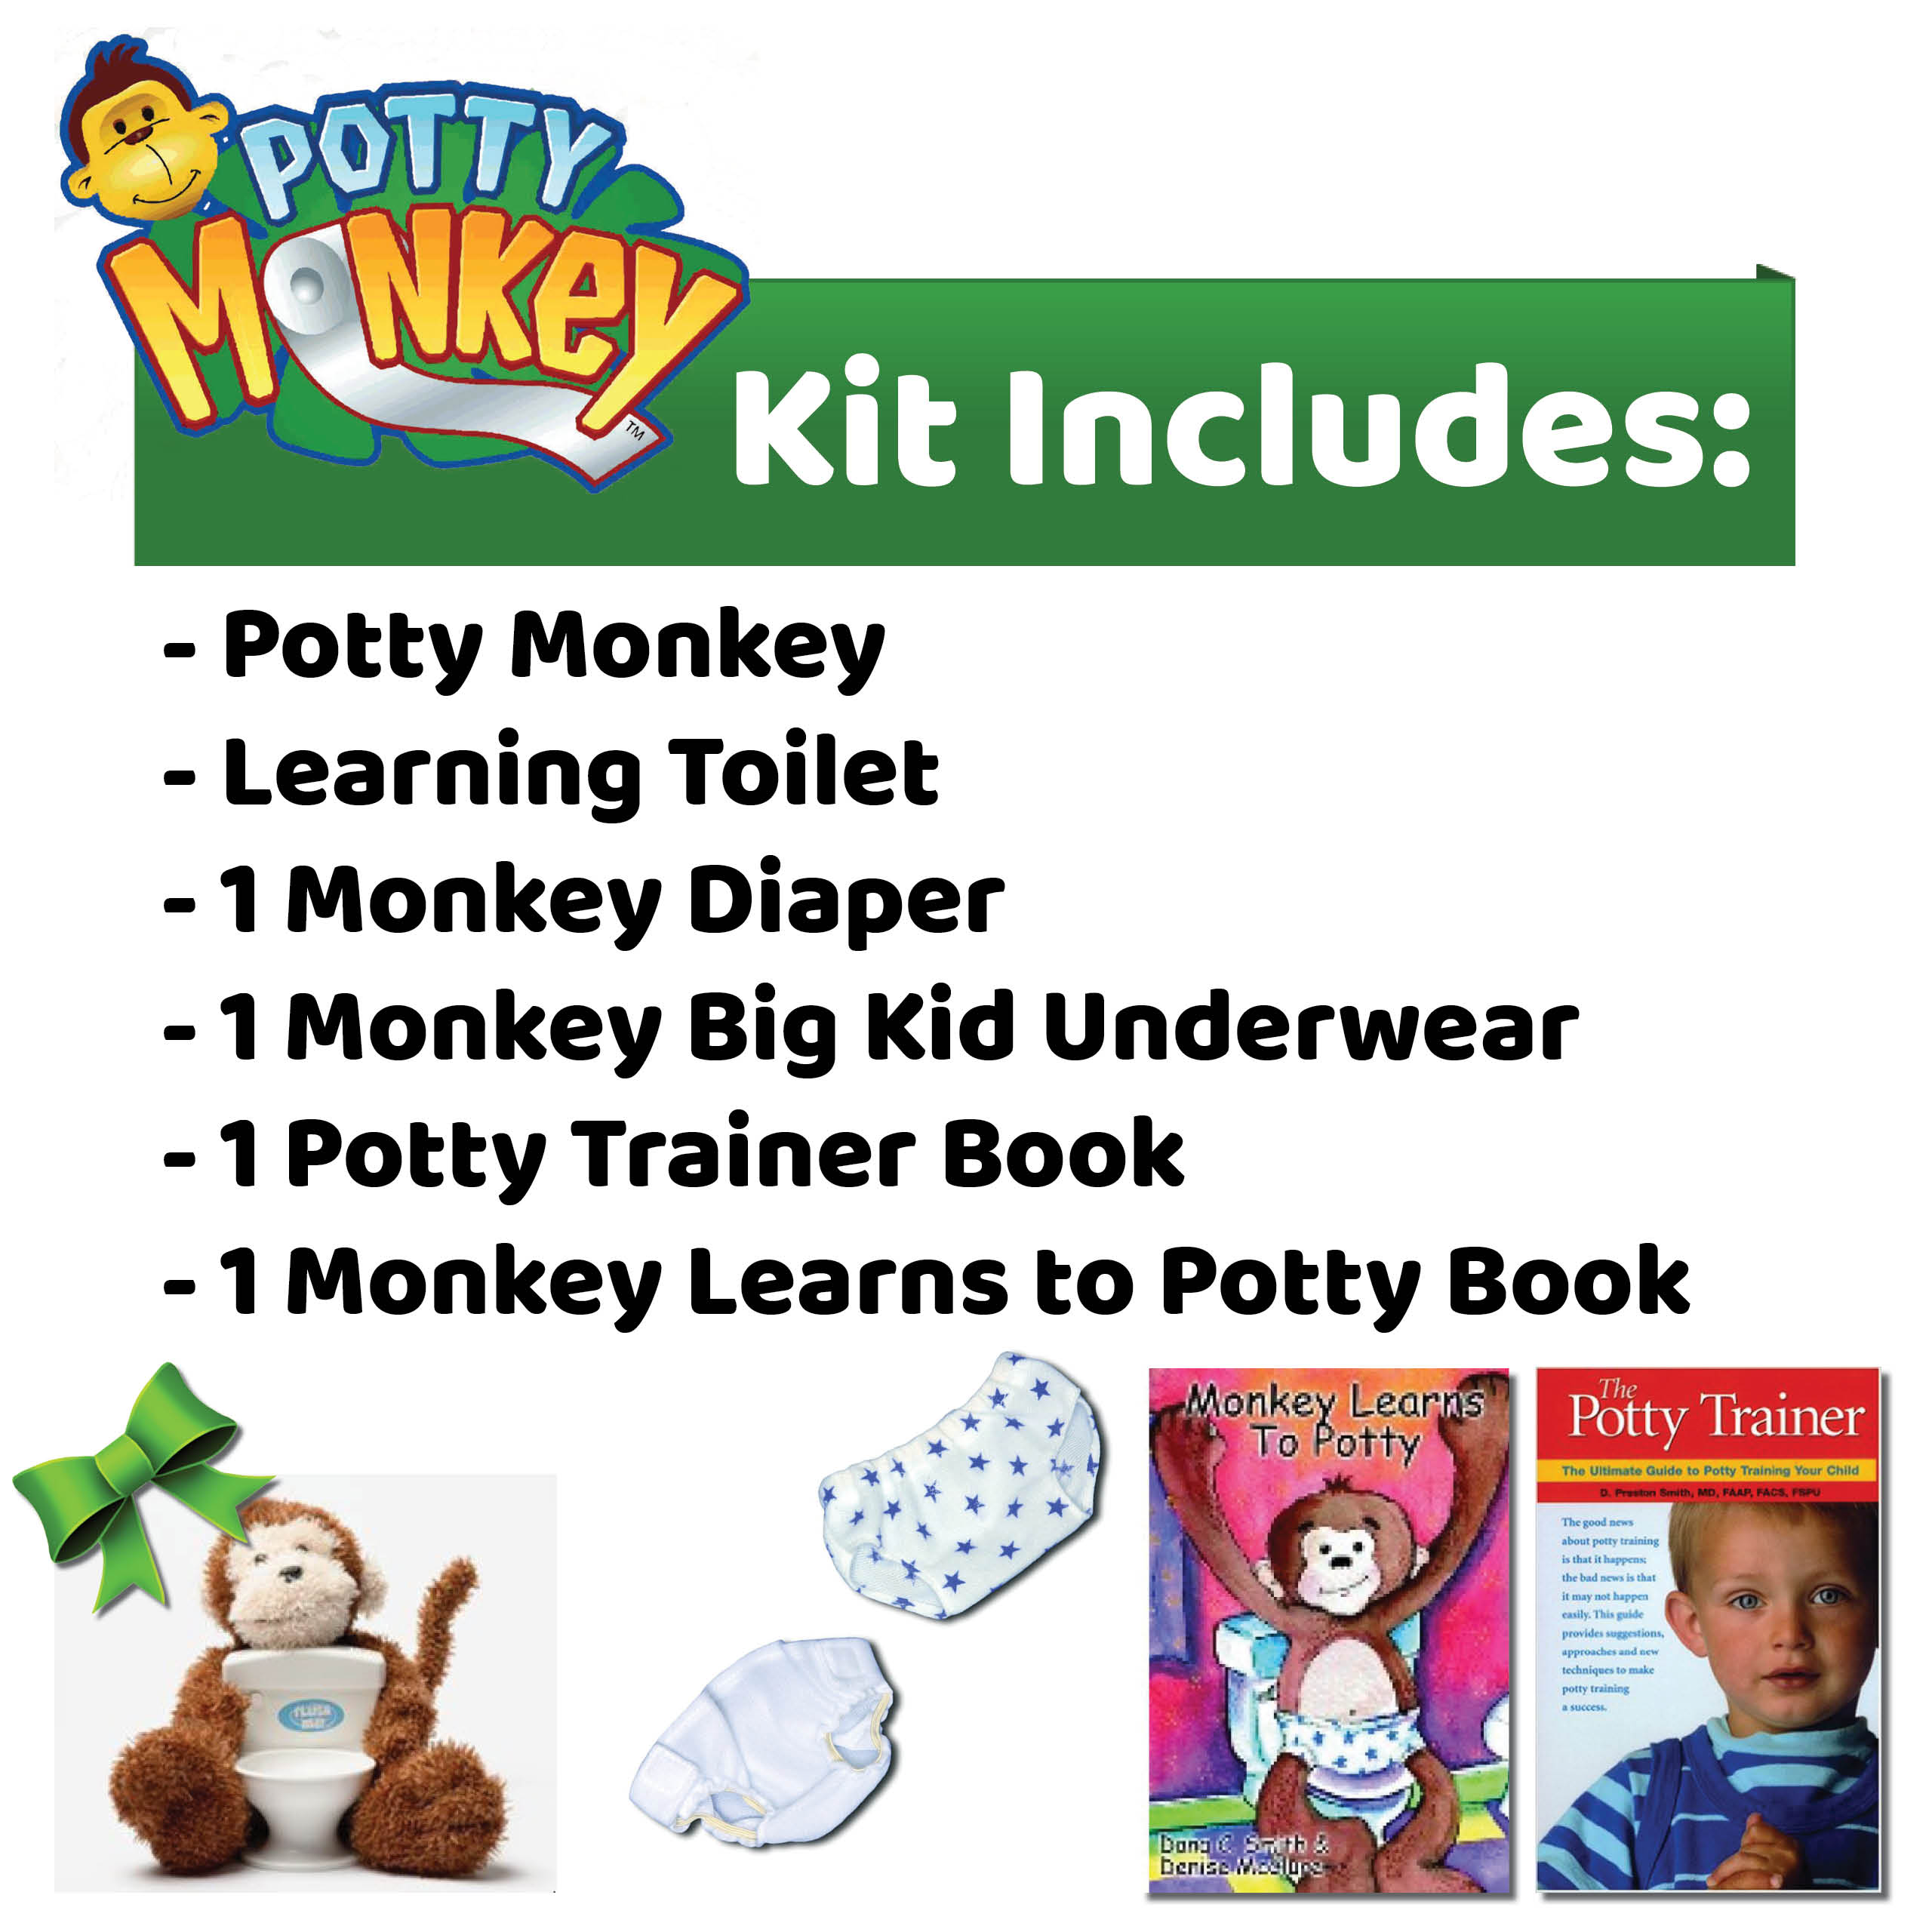 Potty Monkey potty training kit includes Potty Monkey, learning toilet, monkey diaper, monkey underwear, The Potty Trainer book for parents, and Monkey Learns to Potty board book for children.